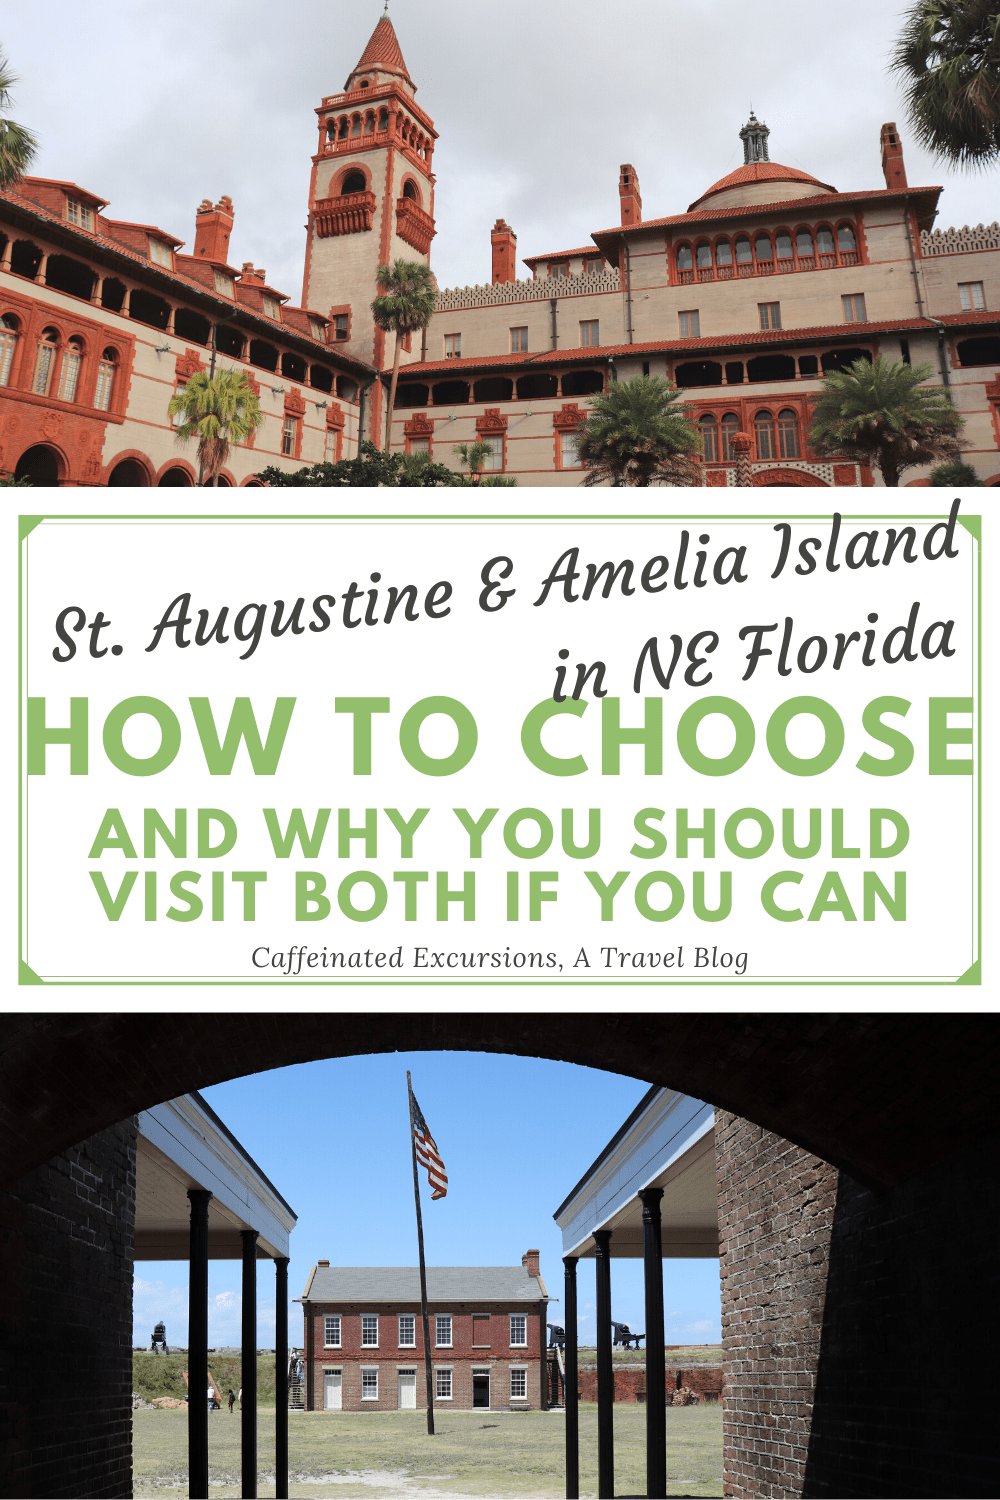 If you need some help choosing a destination in Northeast Florida, check out this blog post! St. Augustine and Amelia Island are both great options! #staugustine #staug #saintaugustine #staugustinefl #staugustineflorida #ameliaisland #ameliaislandflorida #ameliaislandfl #fernandinabeach #flaglercollege #flagler #castillodesanmarcos #lightnermuseum #thefloridian #beachesatvilano #iceplant #iceplantbar #a1aaleworks #fortclinch #fortclinchstatepark #floridastateparks